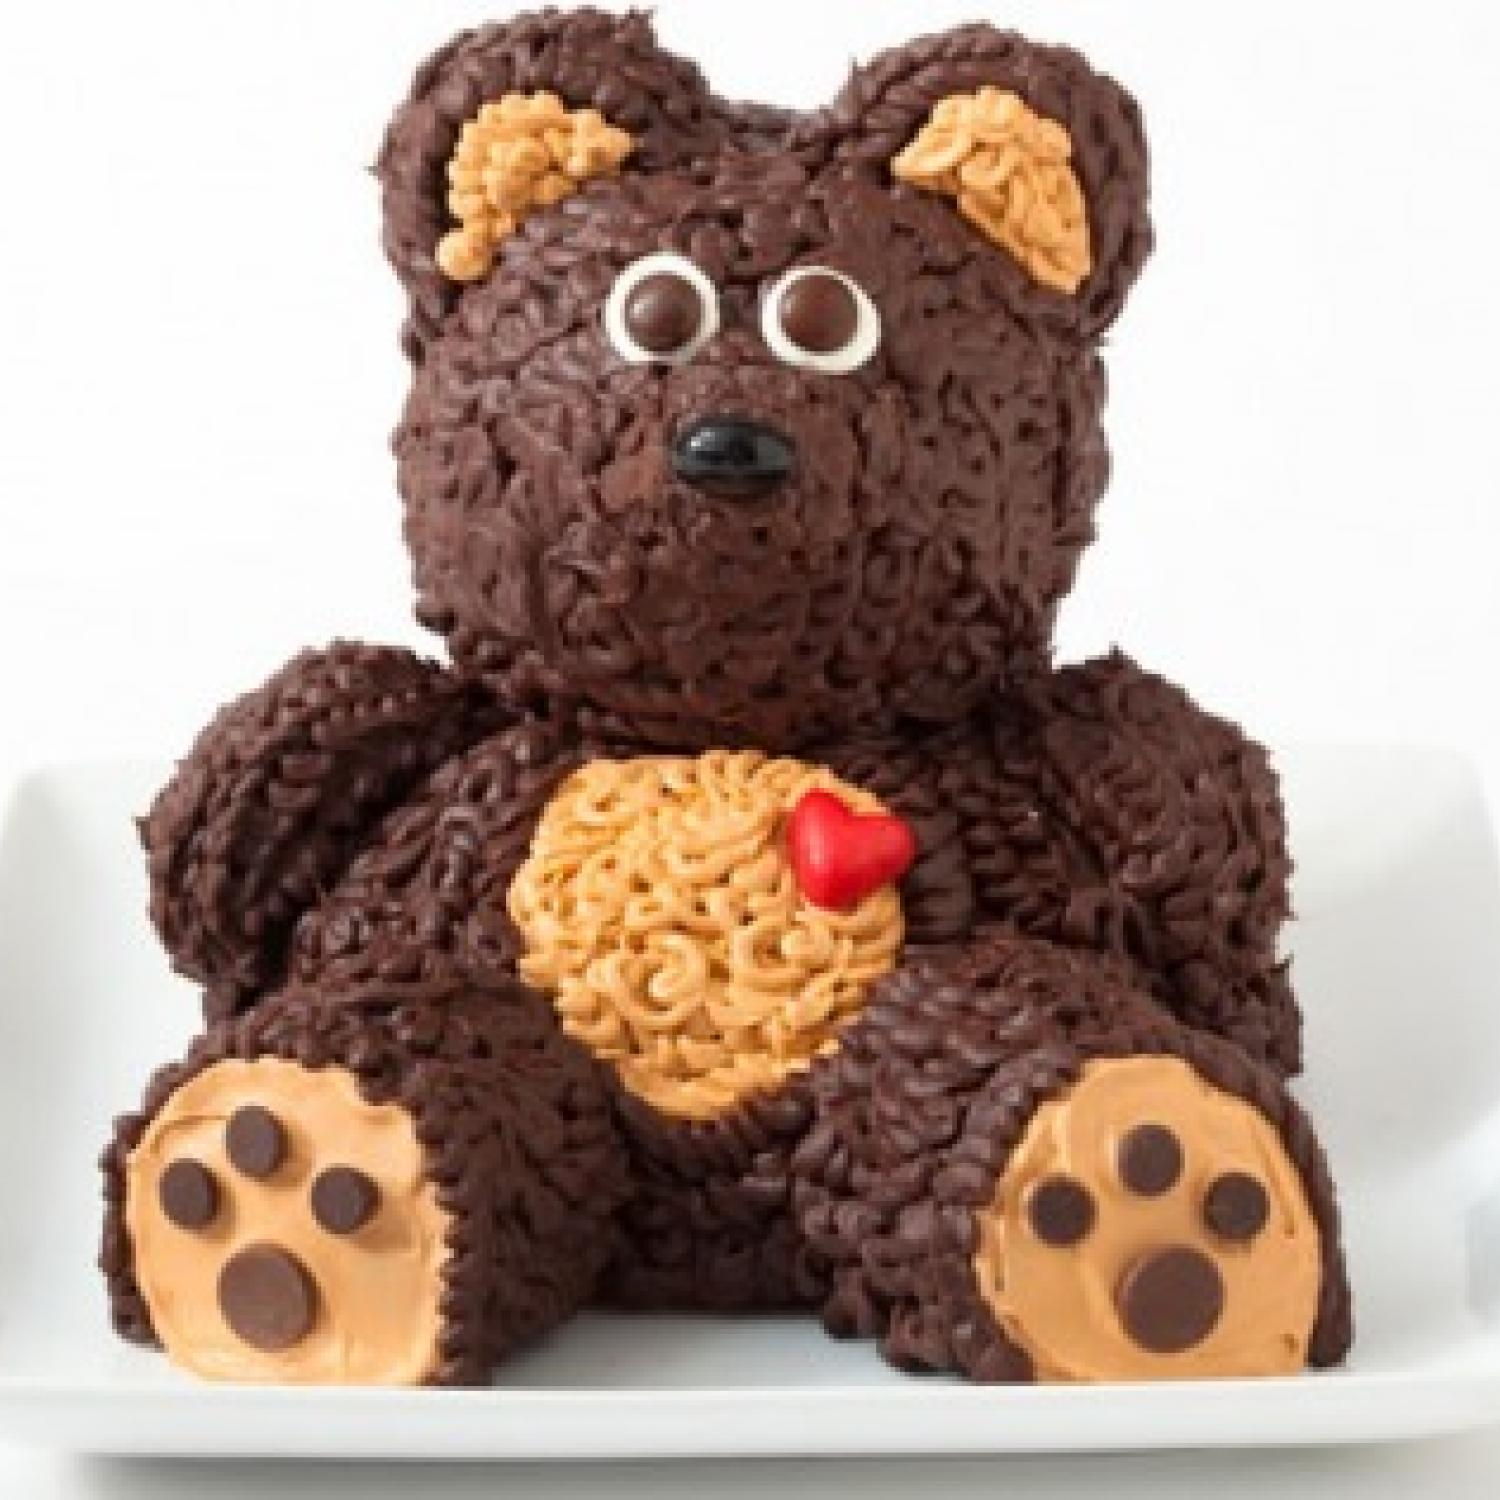 Teddy Bear Birthday Cake Design Parenting